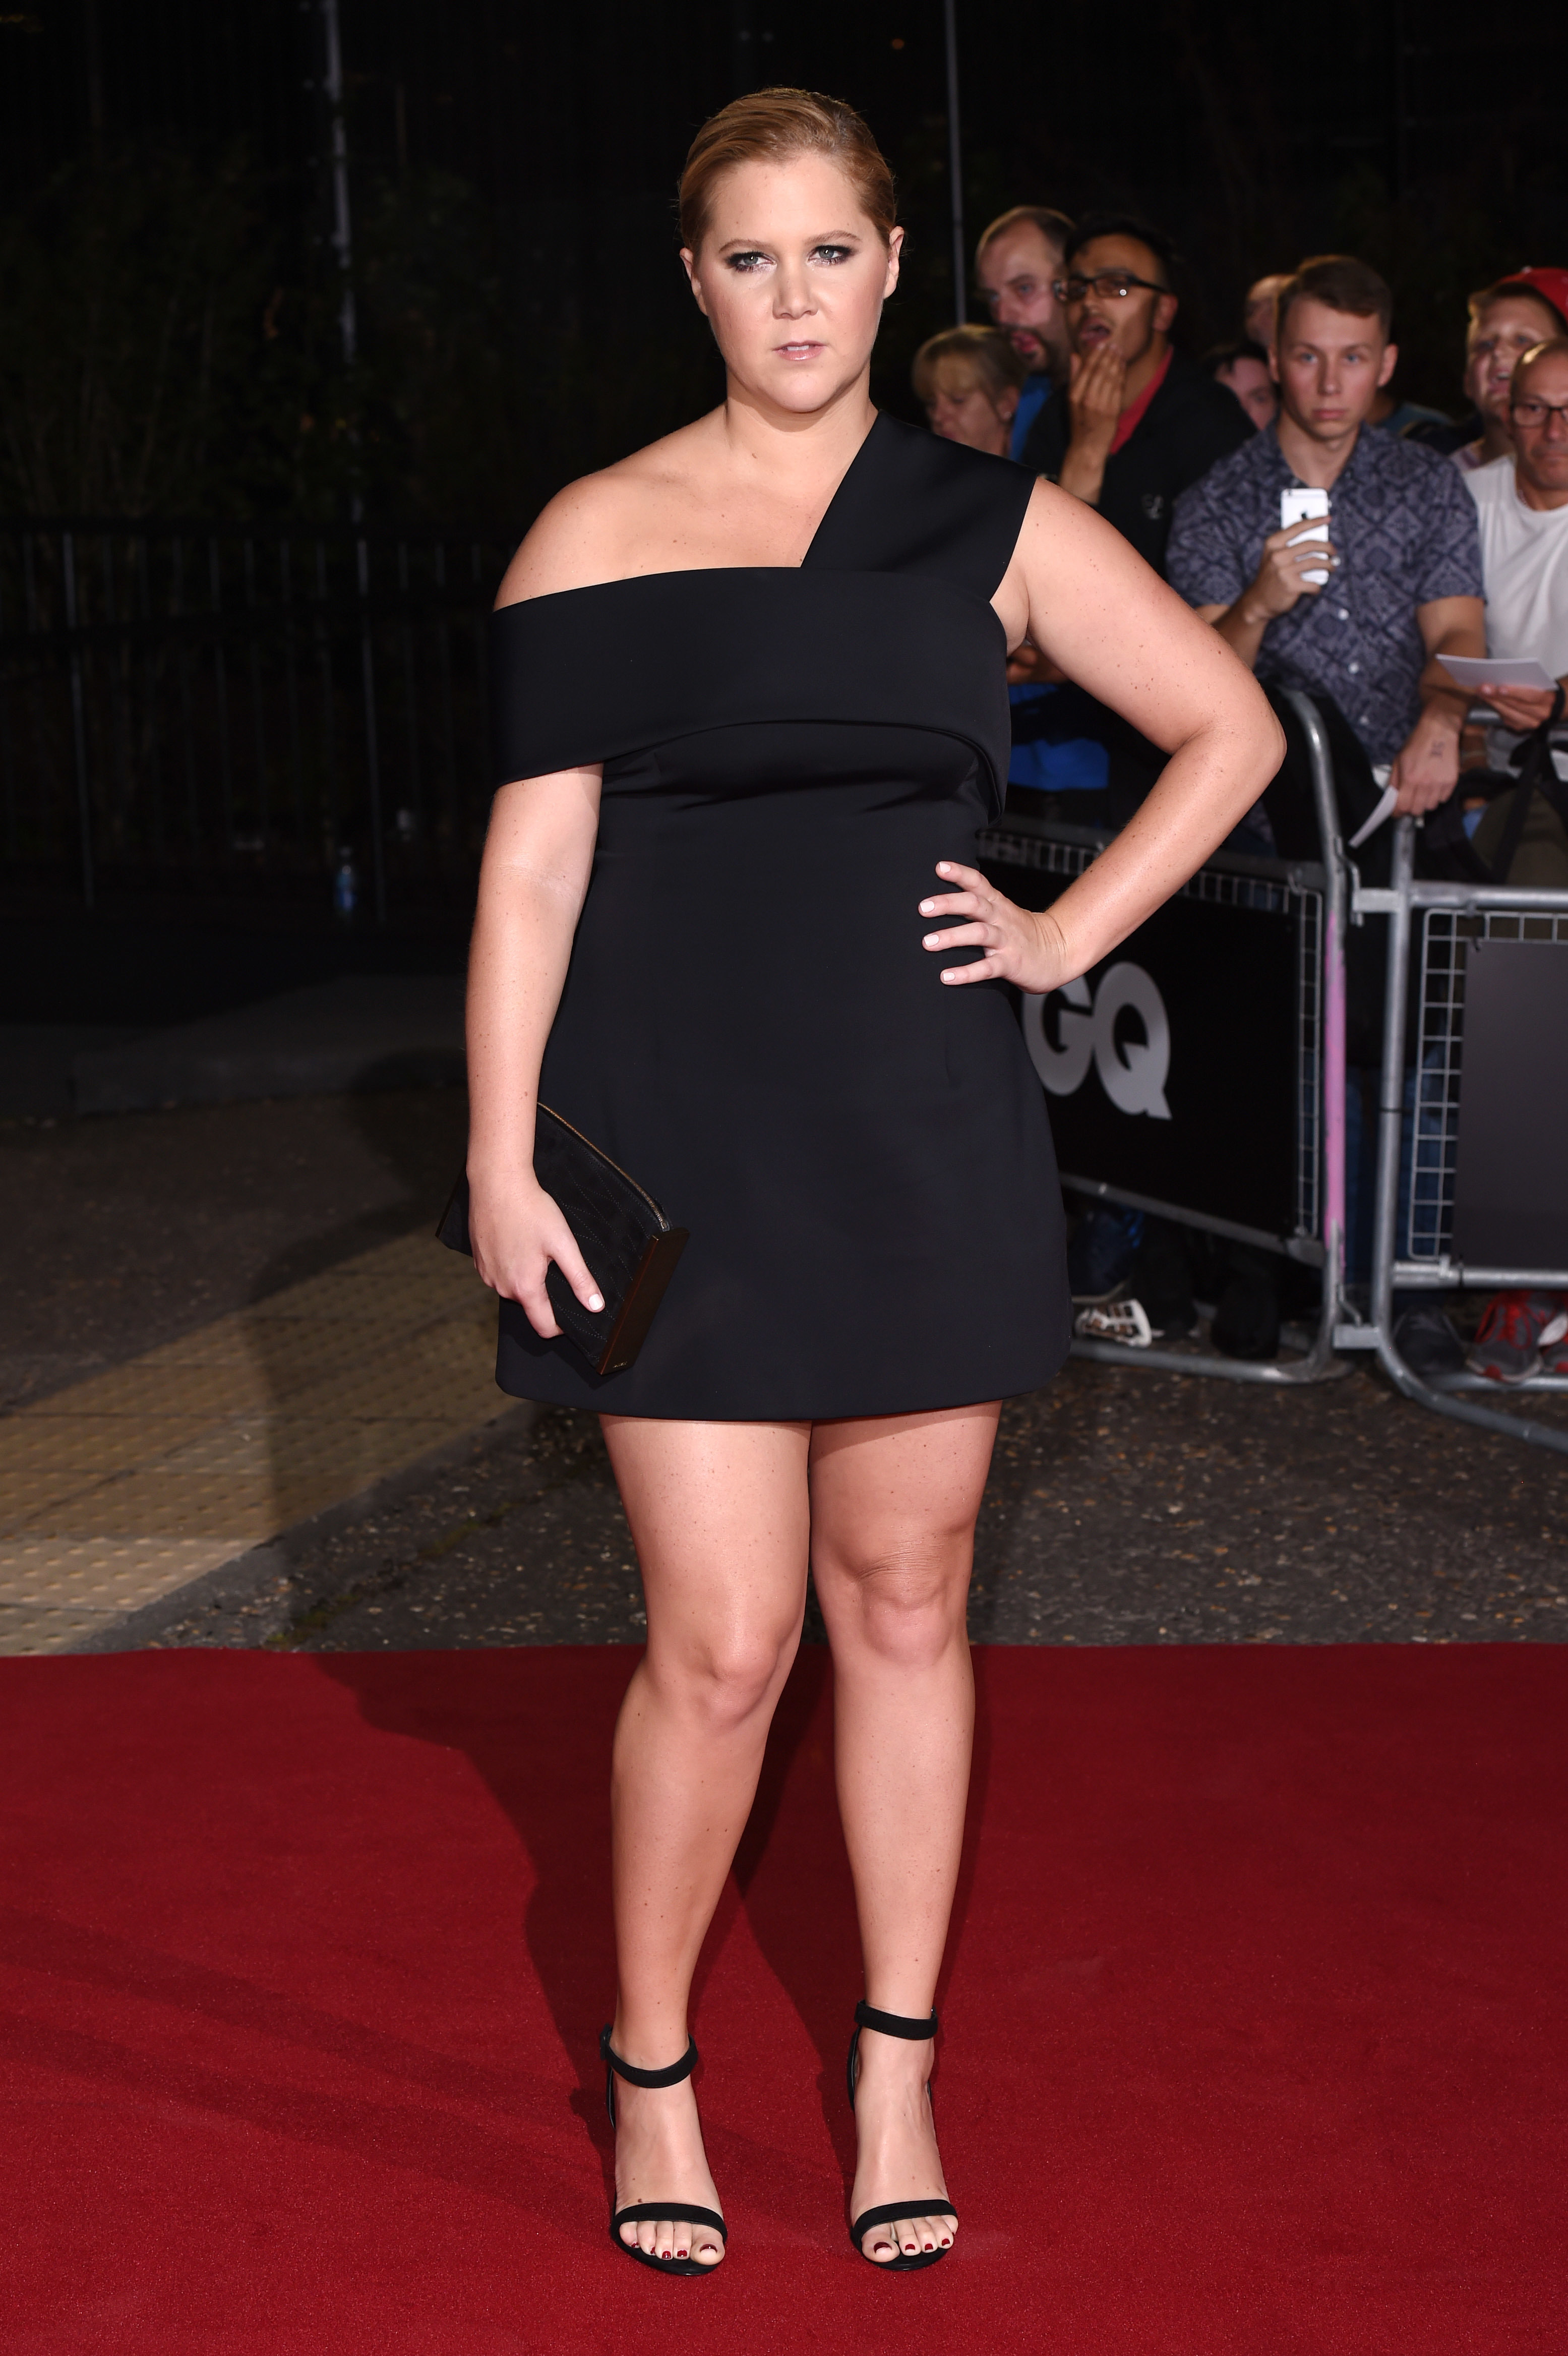 Amy Schumer Toes photo 1